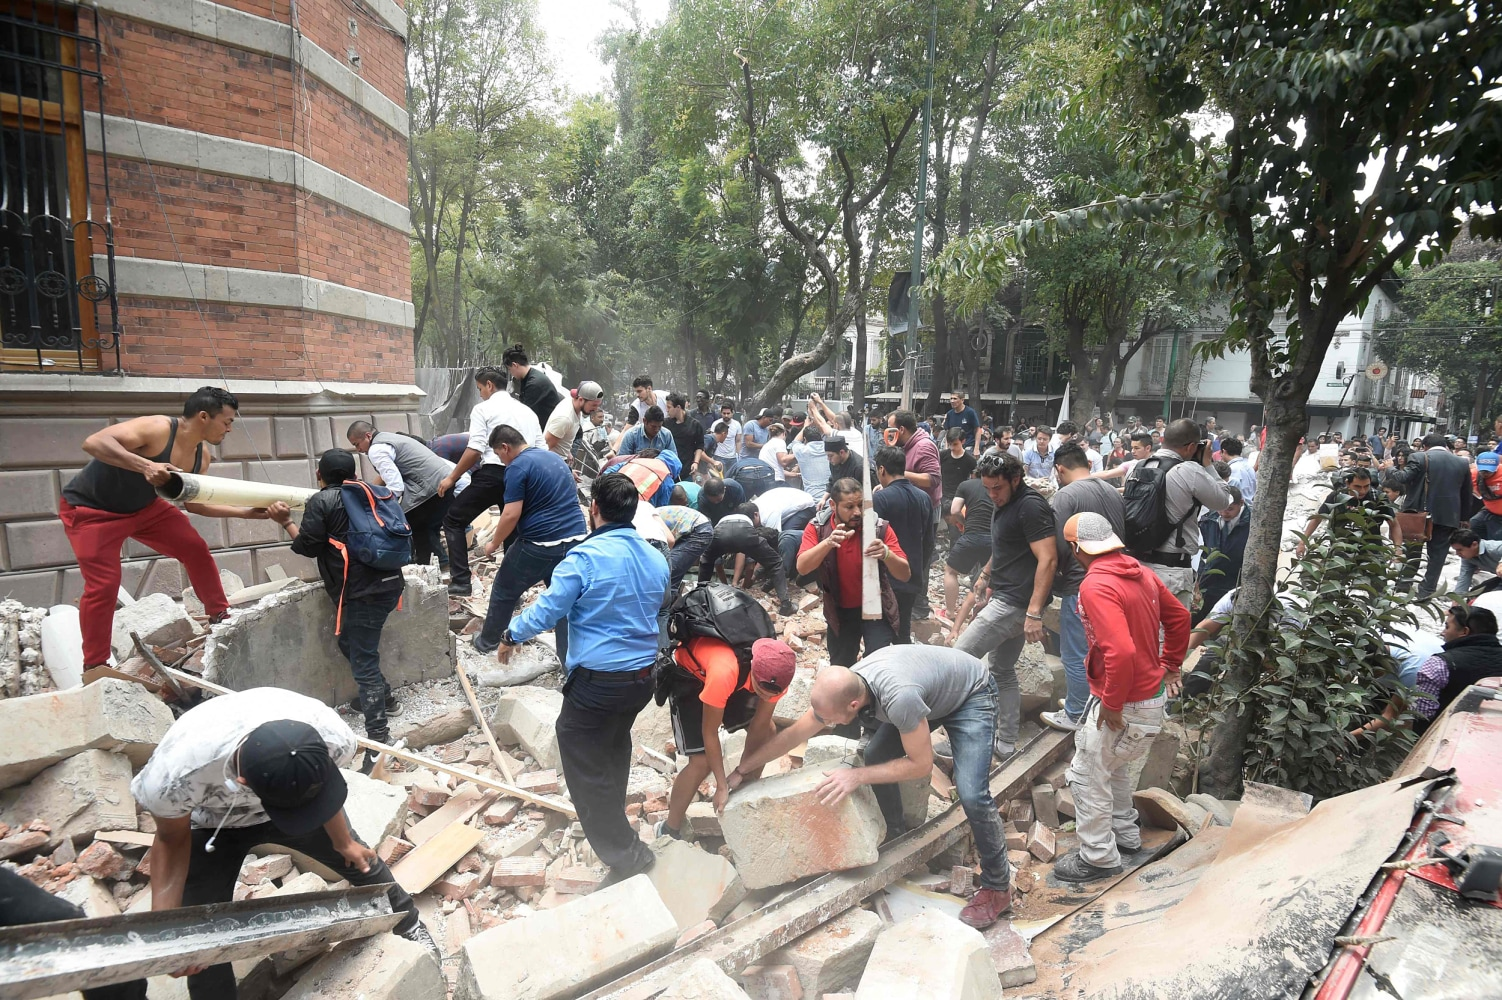 Feared Dead As Huge Earthquake Topples Buildings In Mexico